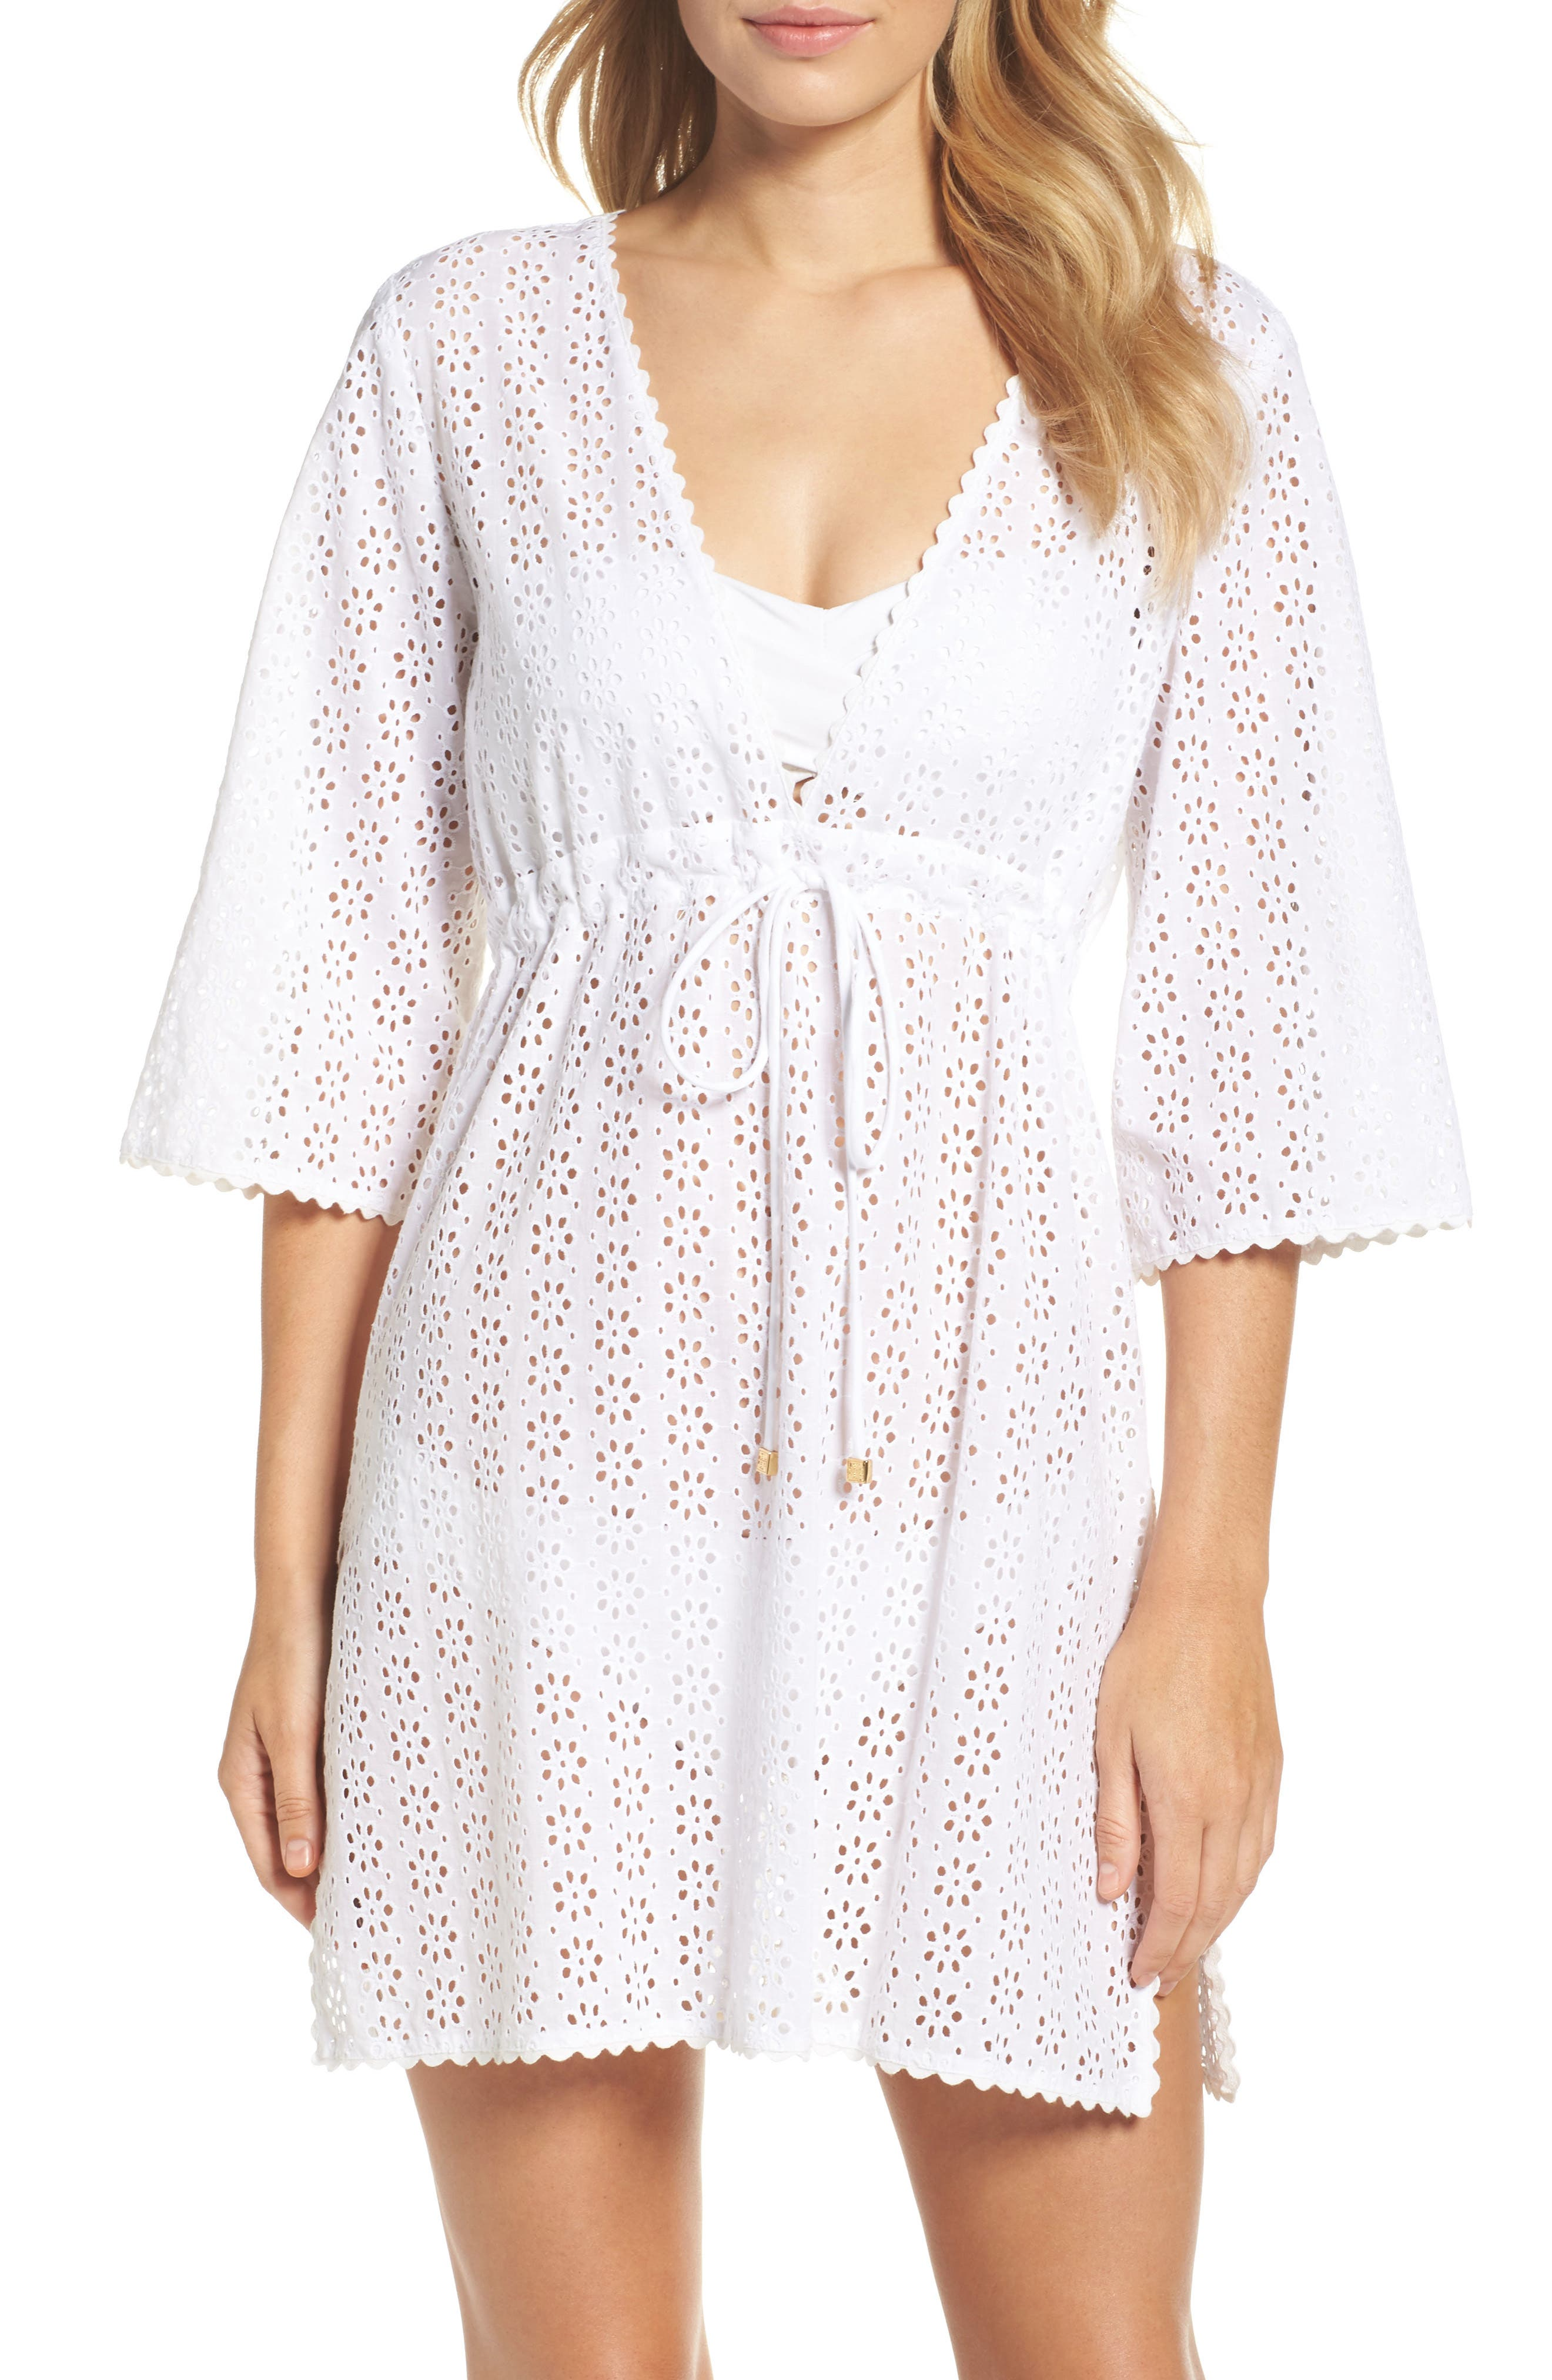 Broderie Anglais Cover-Up Dress,                             Main thumbnail 1, color,                             100